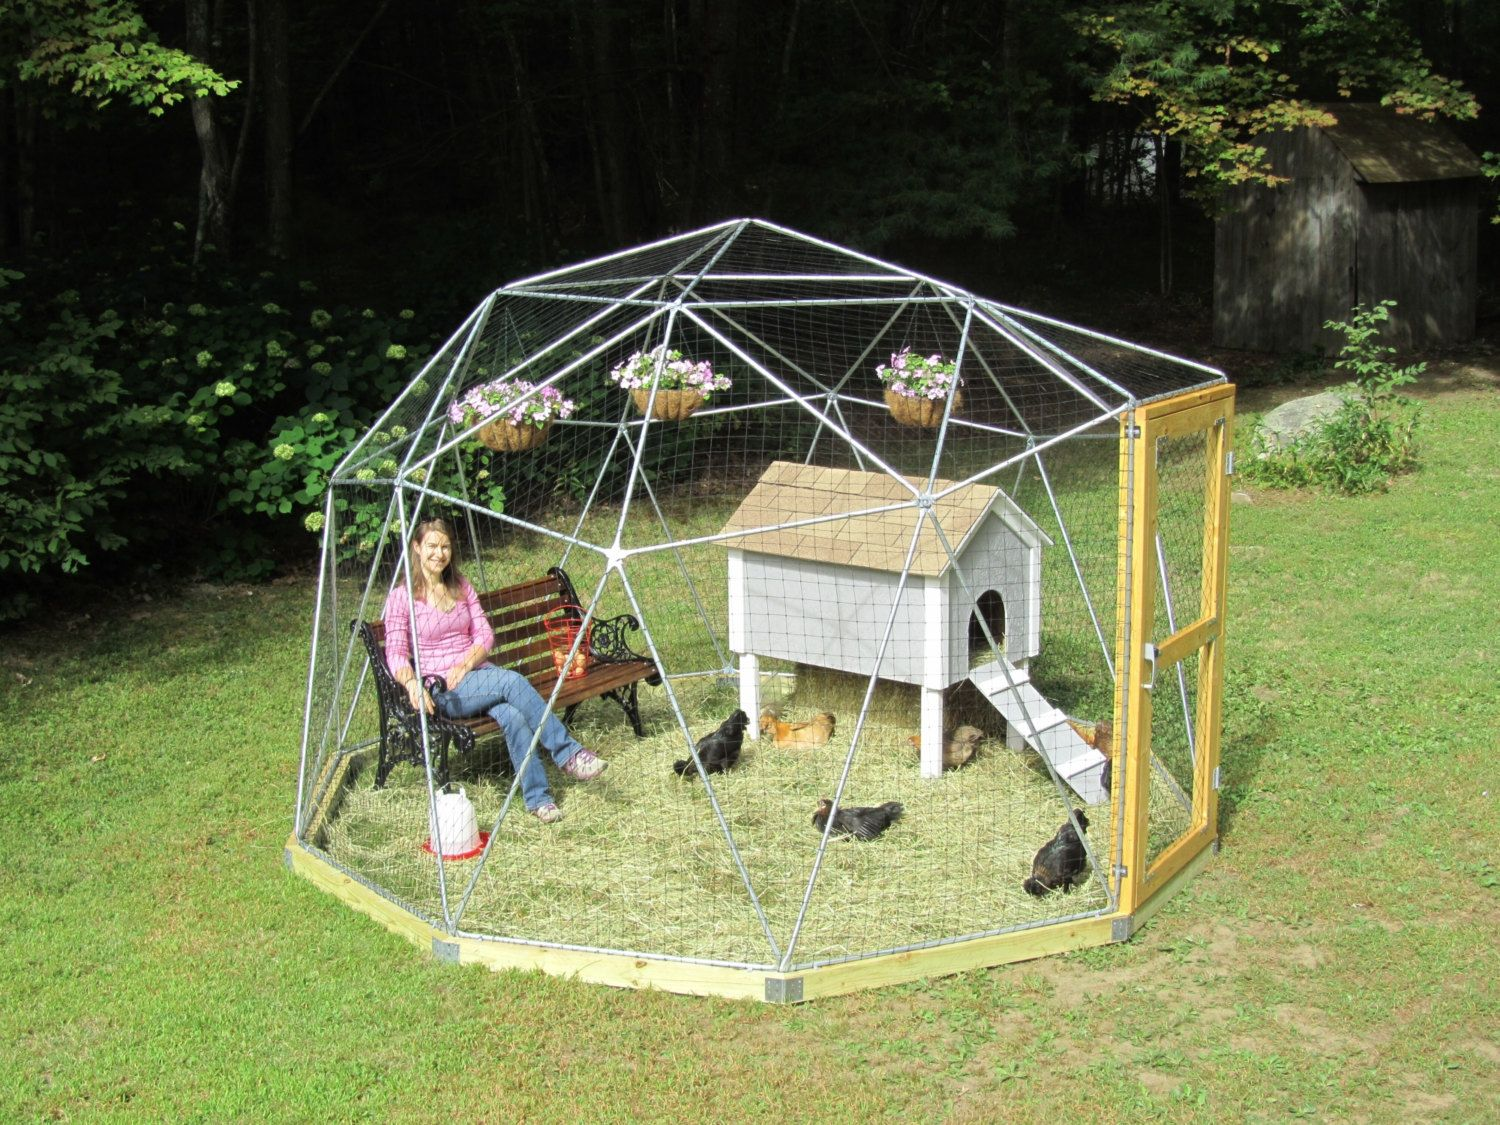 12 ft Geodesic Dome Outdoor Aviary, Chicken Enclosure, Animal Pen ...